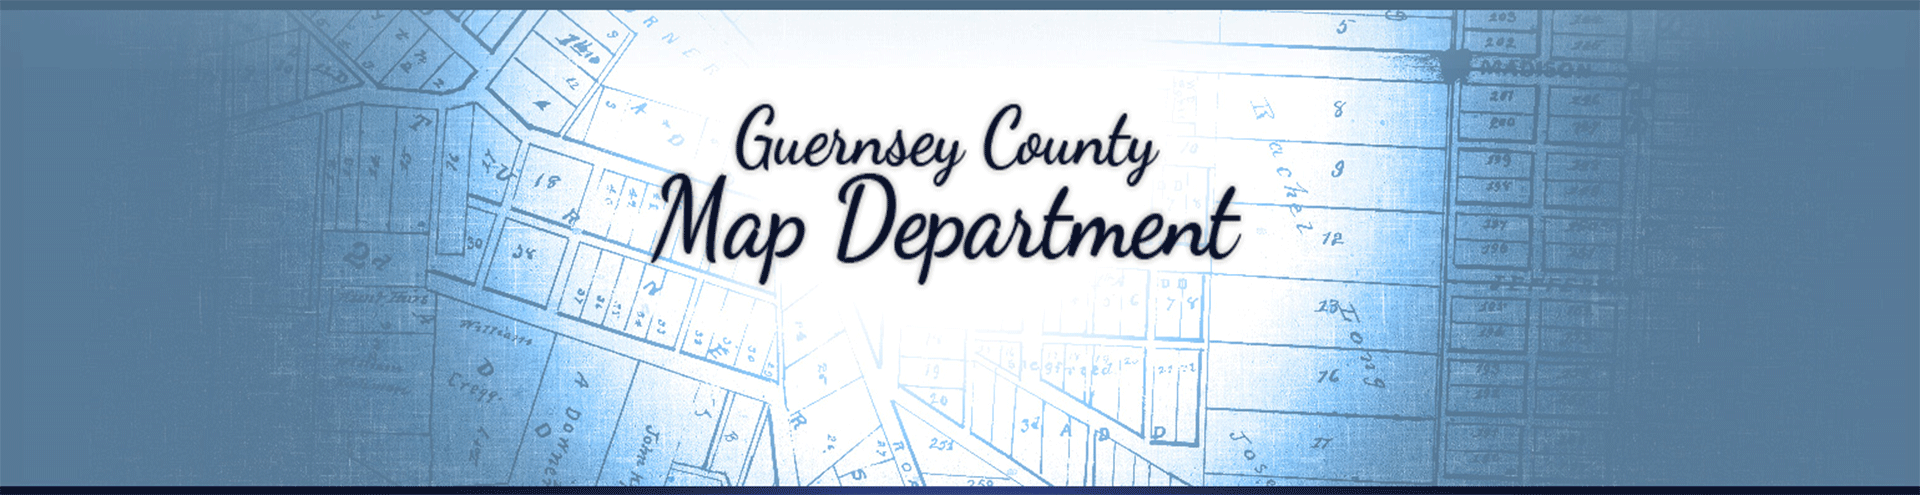 Map Department Guernsey County